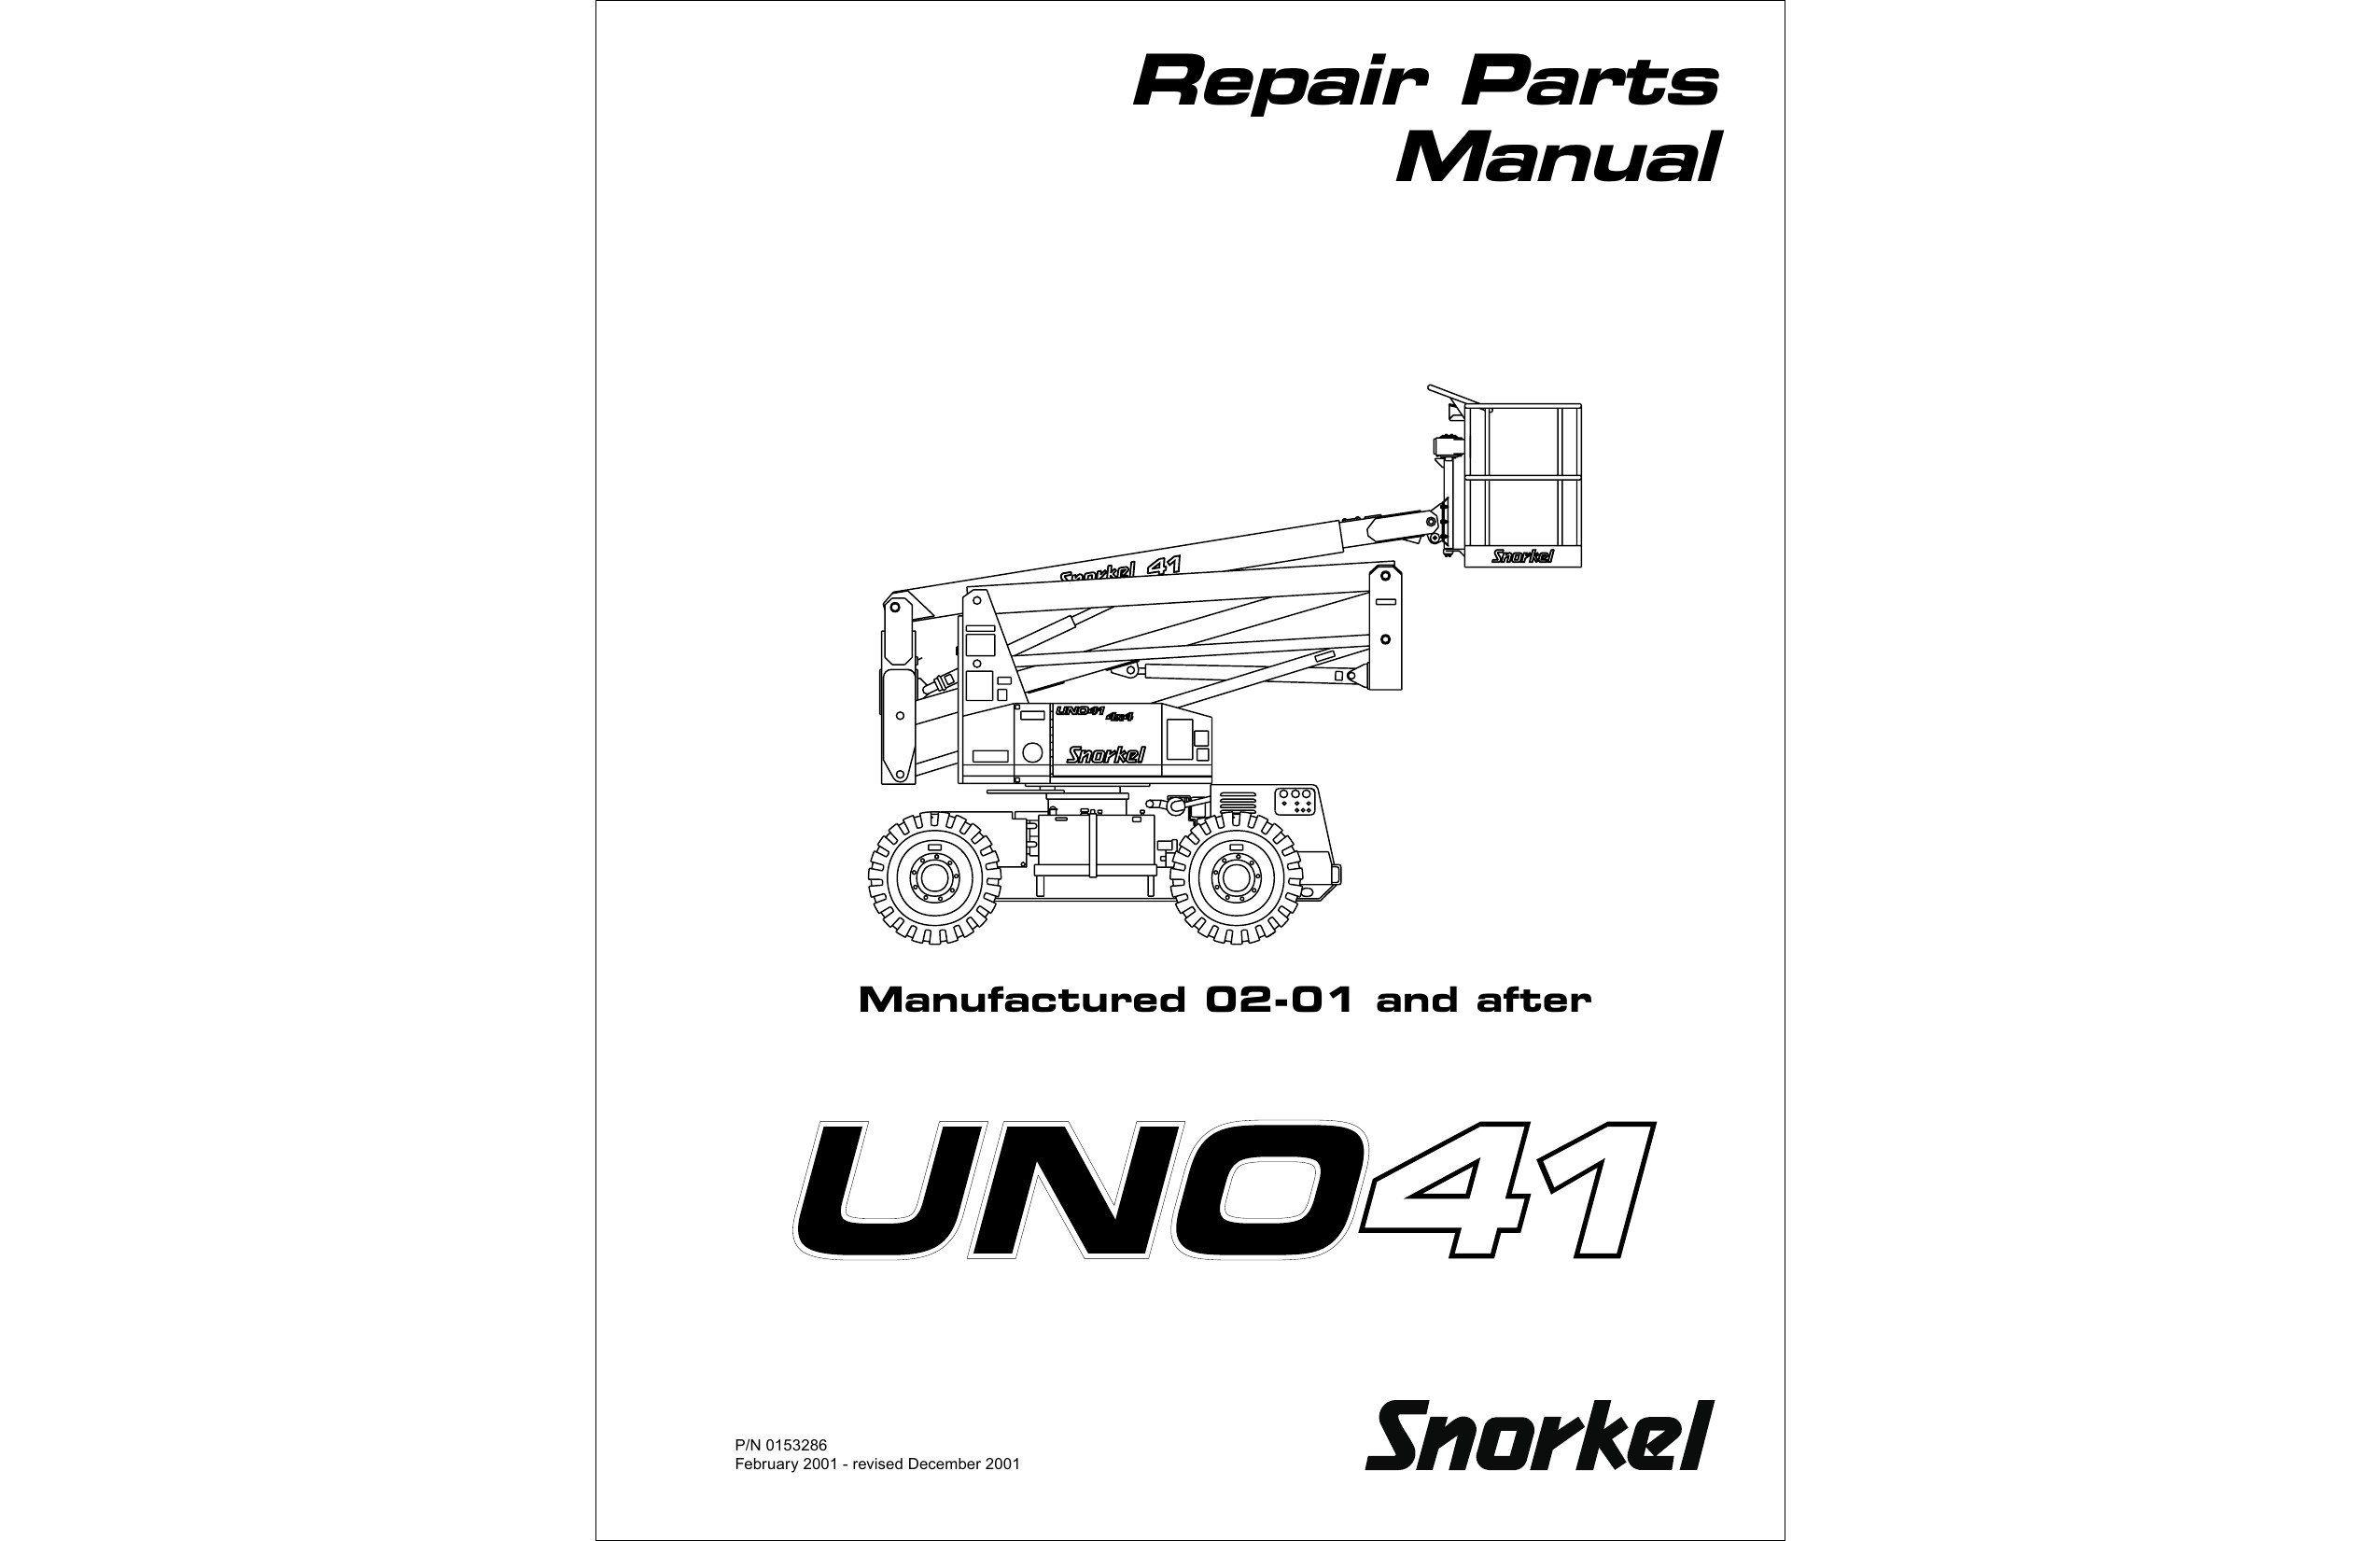 Snorkel Parts Manual atb-33e Dealer Repair Parts Manual Of Snorkel Parts Manual atb-33e Dealer